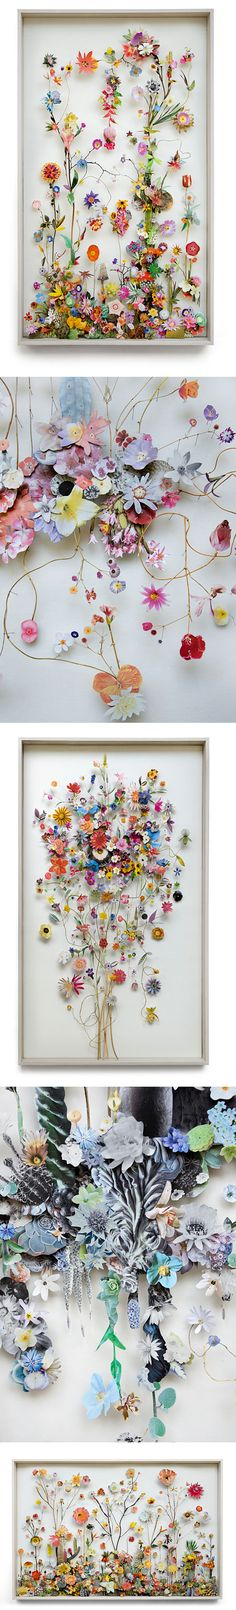 The difference between art and craft and the work of Anne Ten Donkelaar& collages. Flower Collage, Collage Art, Flower Art, Dried Flowers, Paper Flowers, Aunt Peaches, Paper Art, Paper Crafts, Art Floral